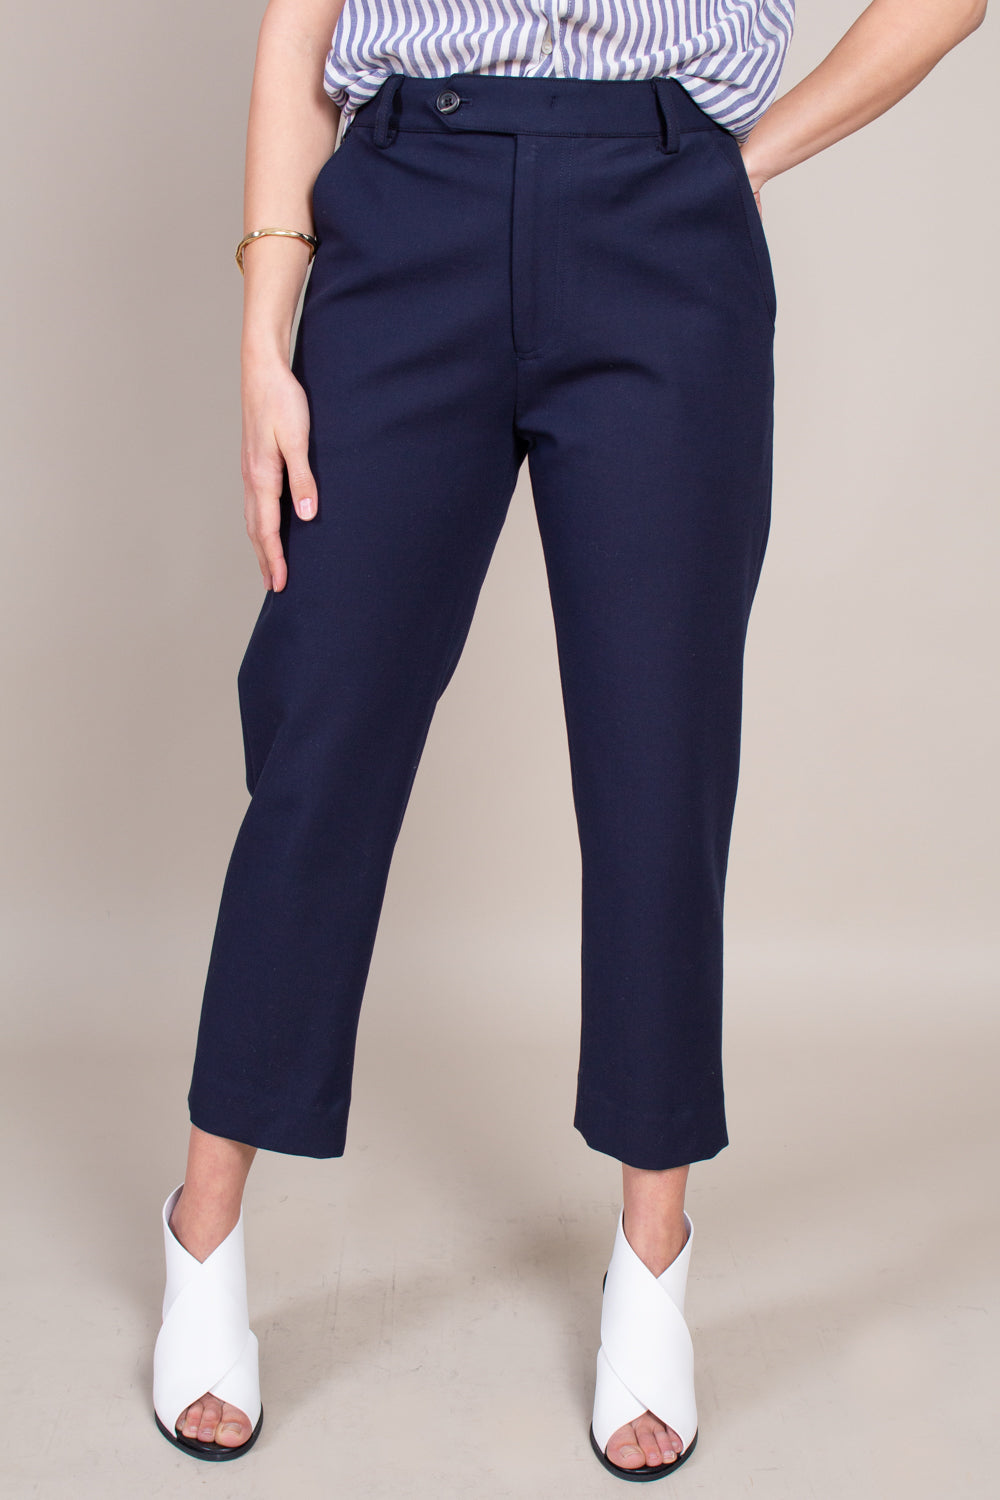 Murray Pant in Navy